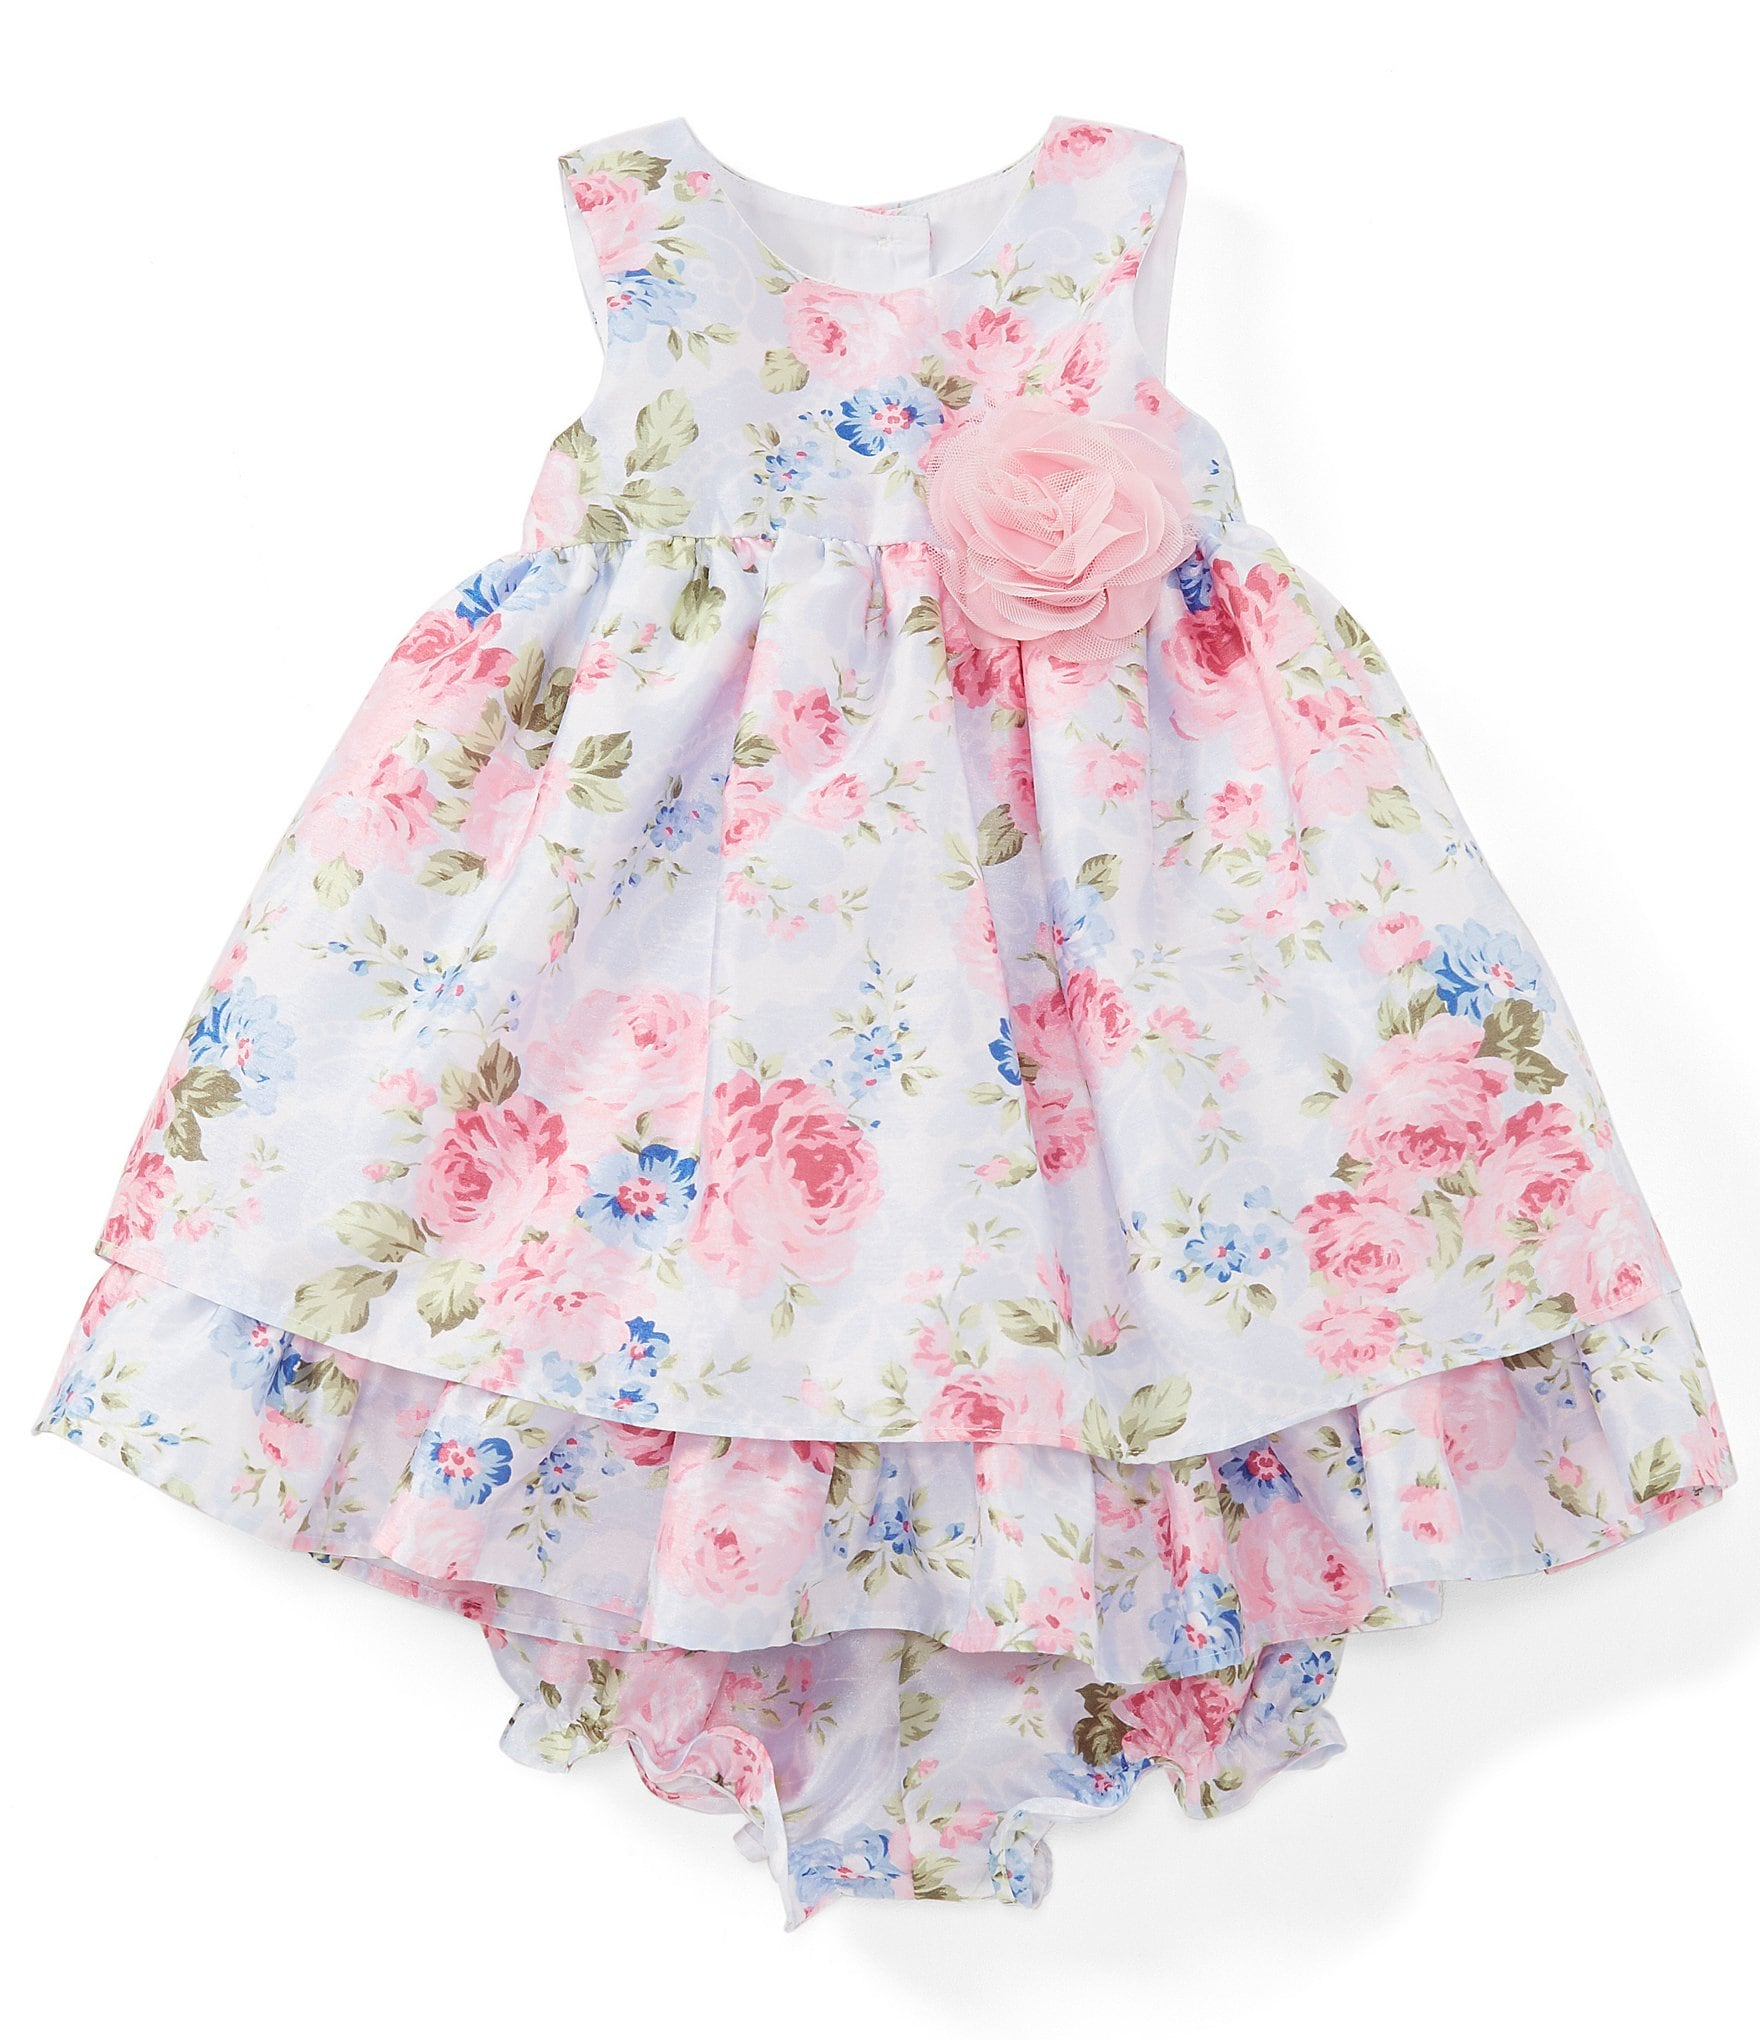 c38d84500cab4 Laura Ashley Baby Girls 12-24 Months Floral Fit-And-Flare Dress | Dillard's